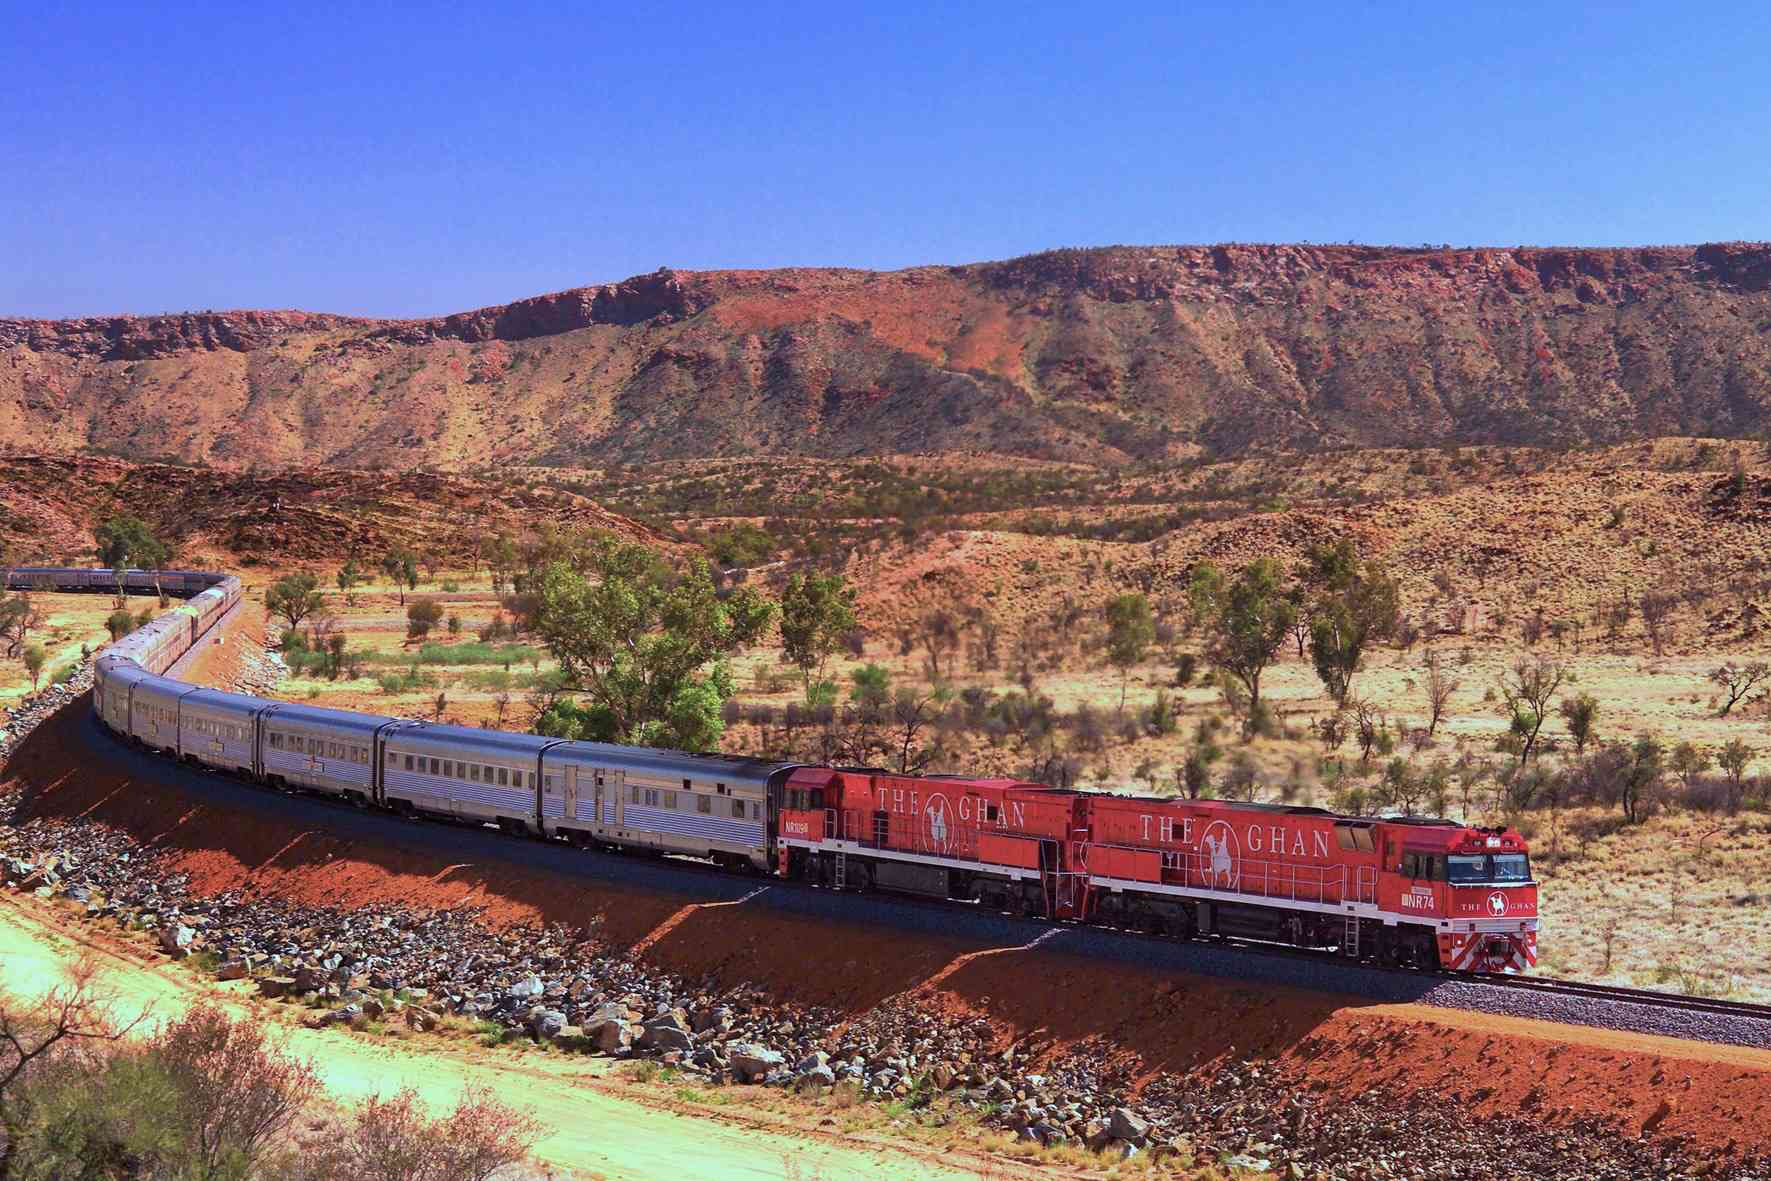 The Ghan snaking through Australian Outback with mountains in background